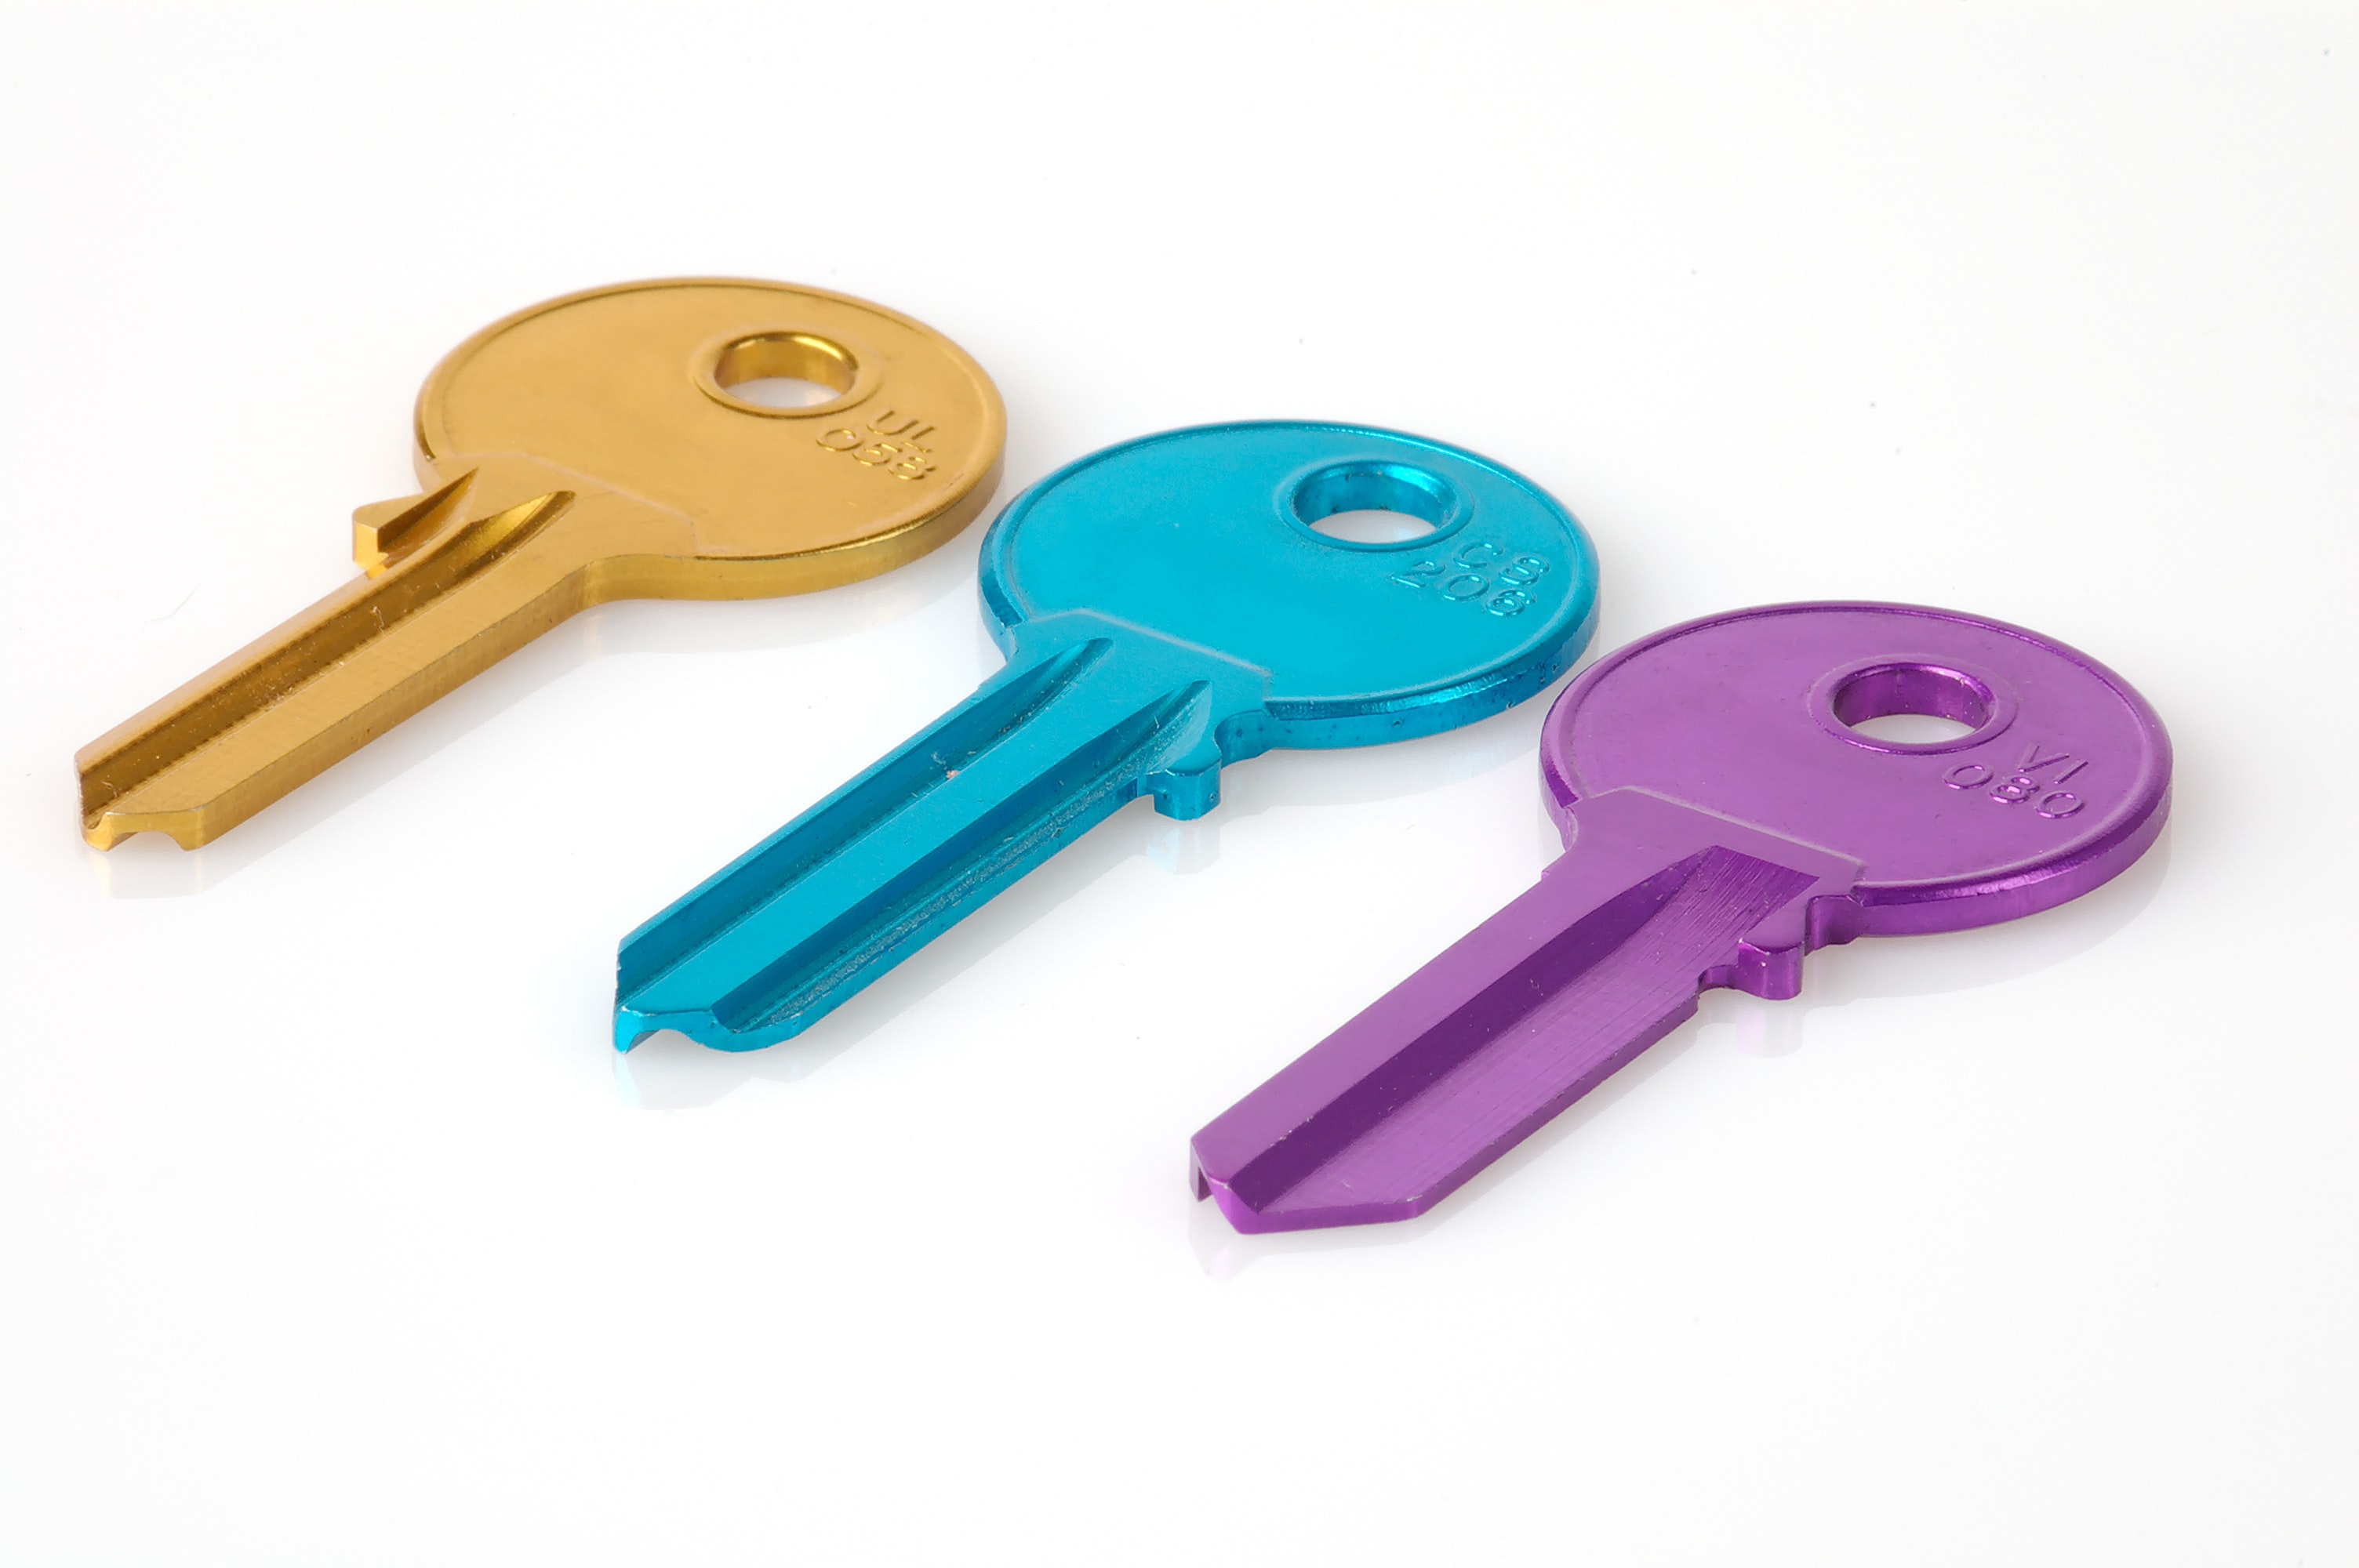 Three keys, yellow, blue and purple, on a white surface.